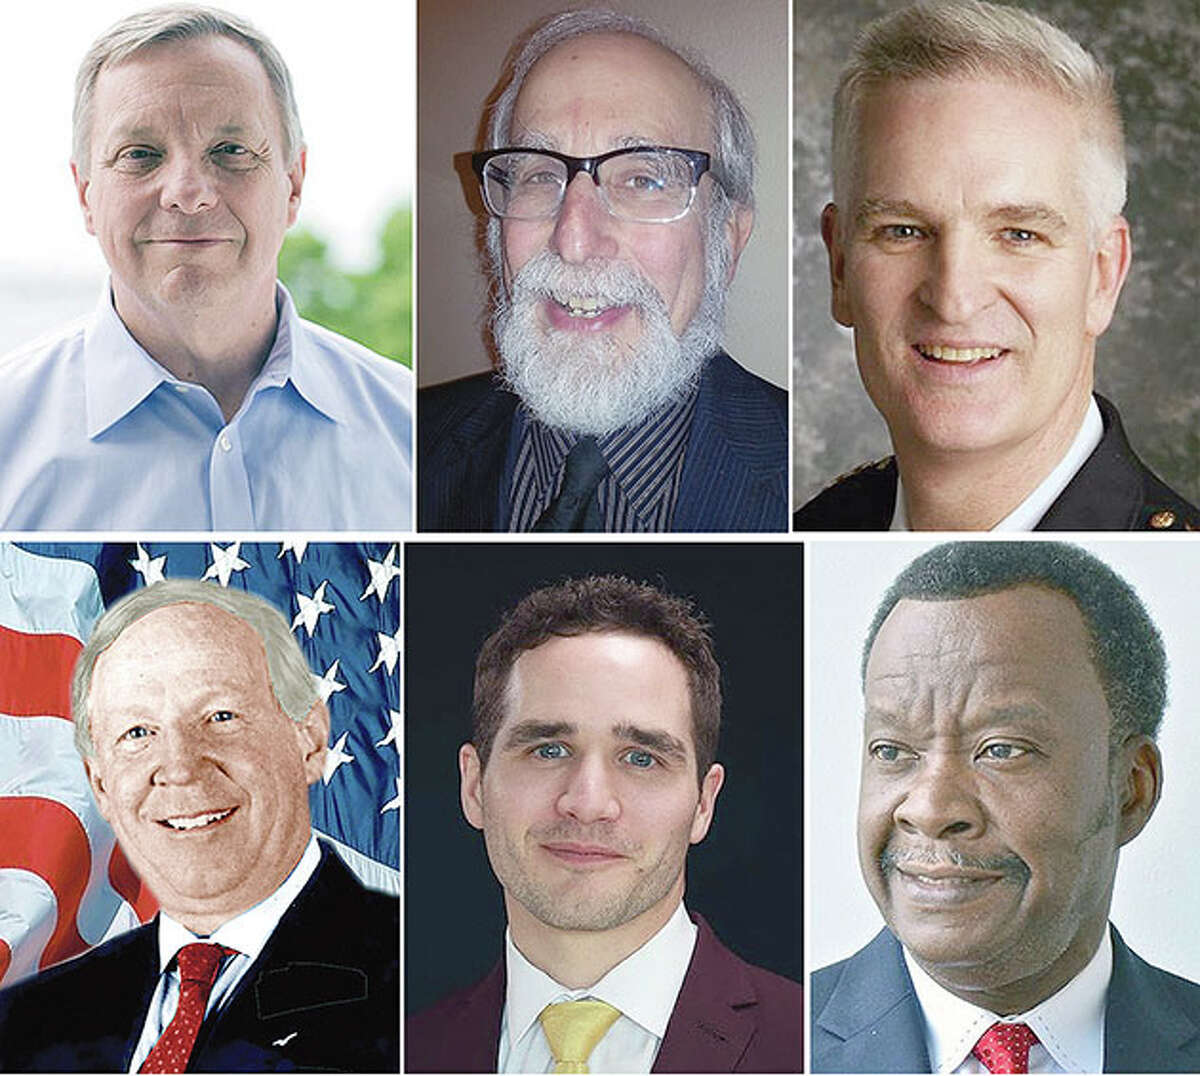 Six people are vying for the U.S. Senate seat now held by Richard Durbin.